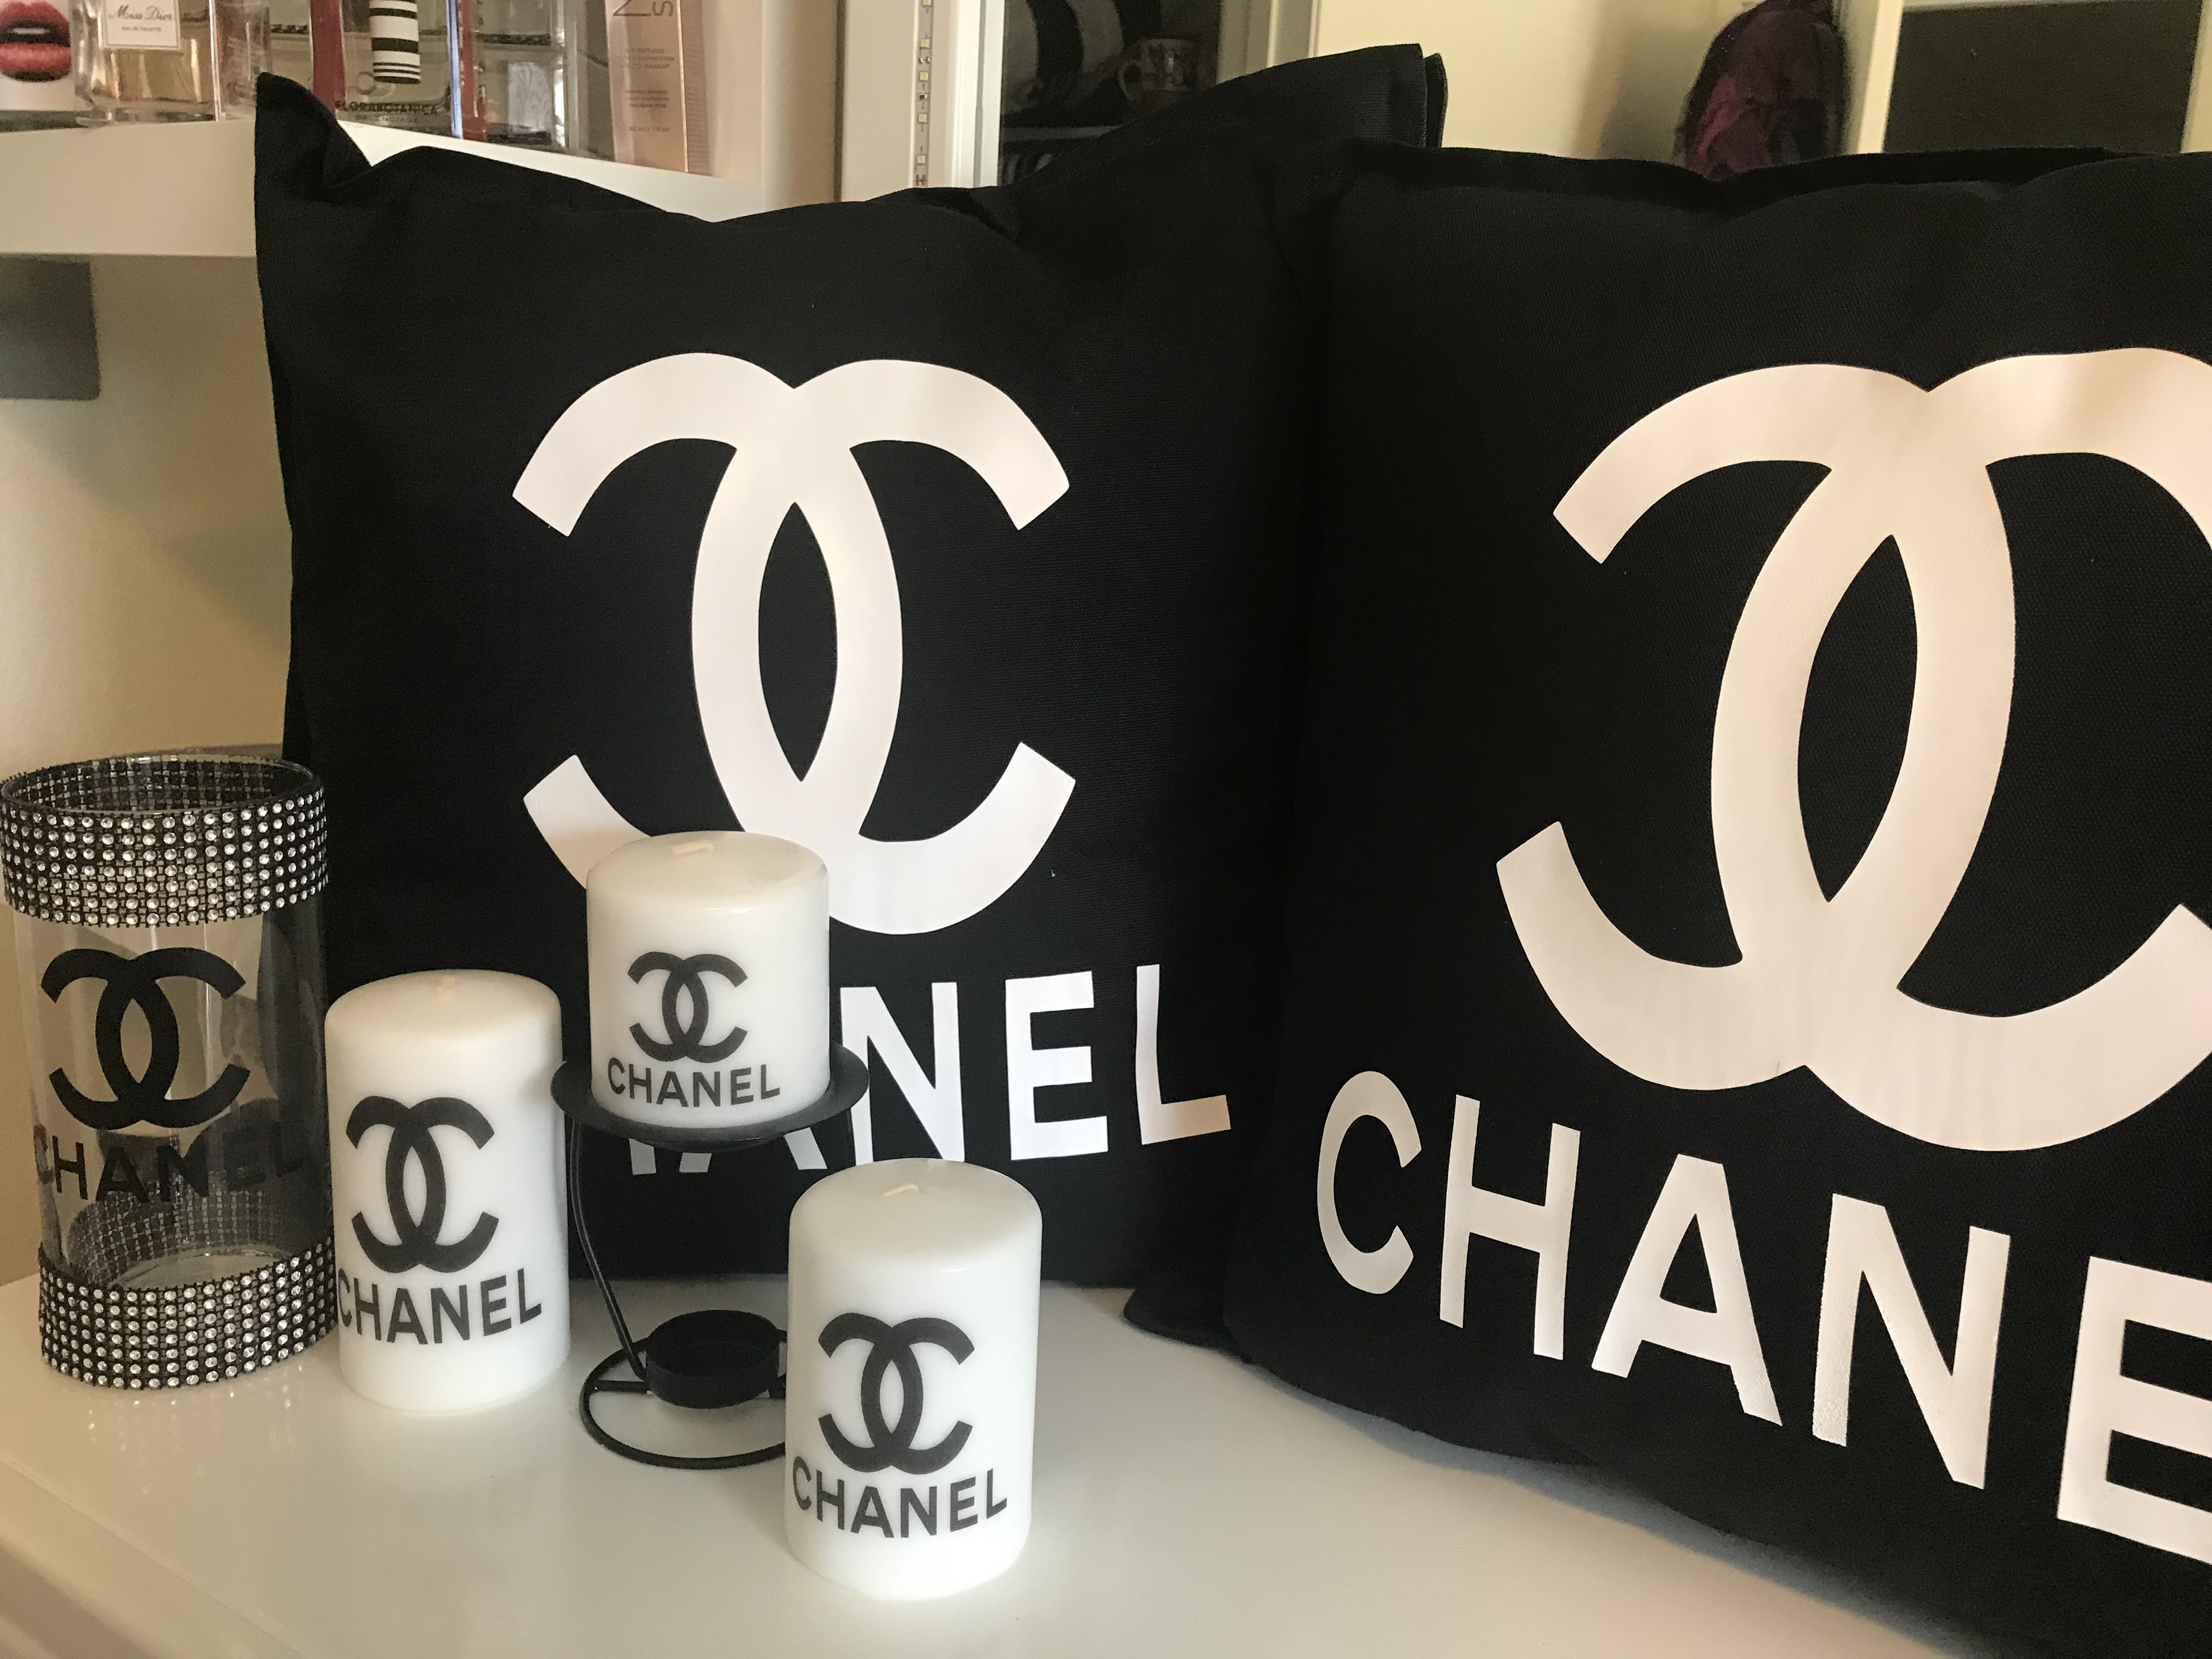 Chanel Home Decor Pillows And Candles Plus Vase Chanel Decor